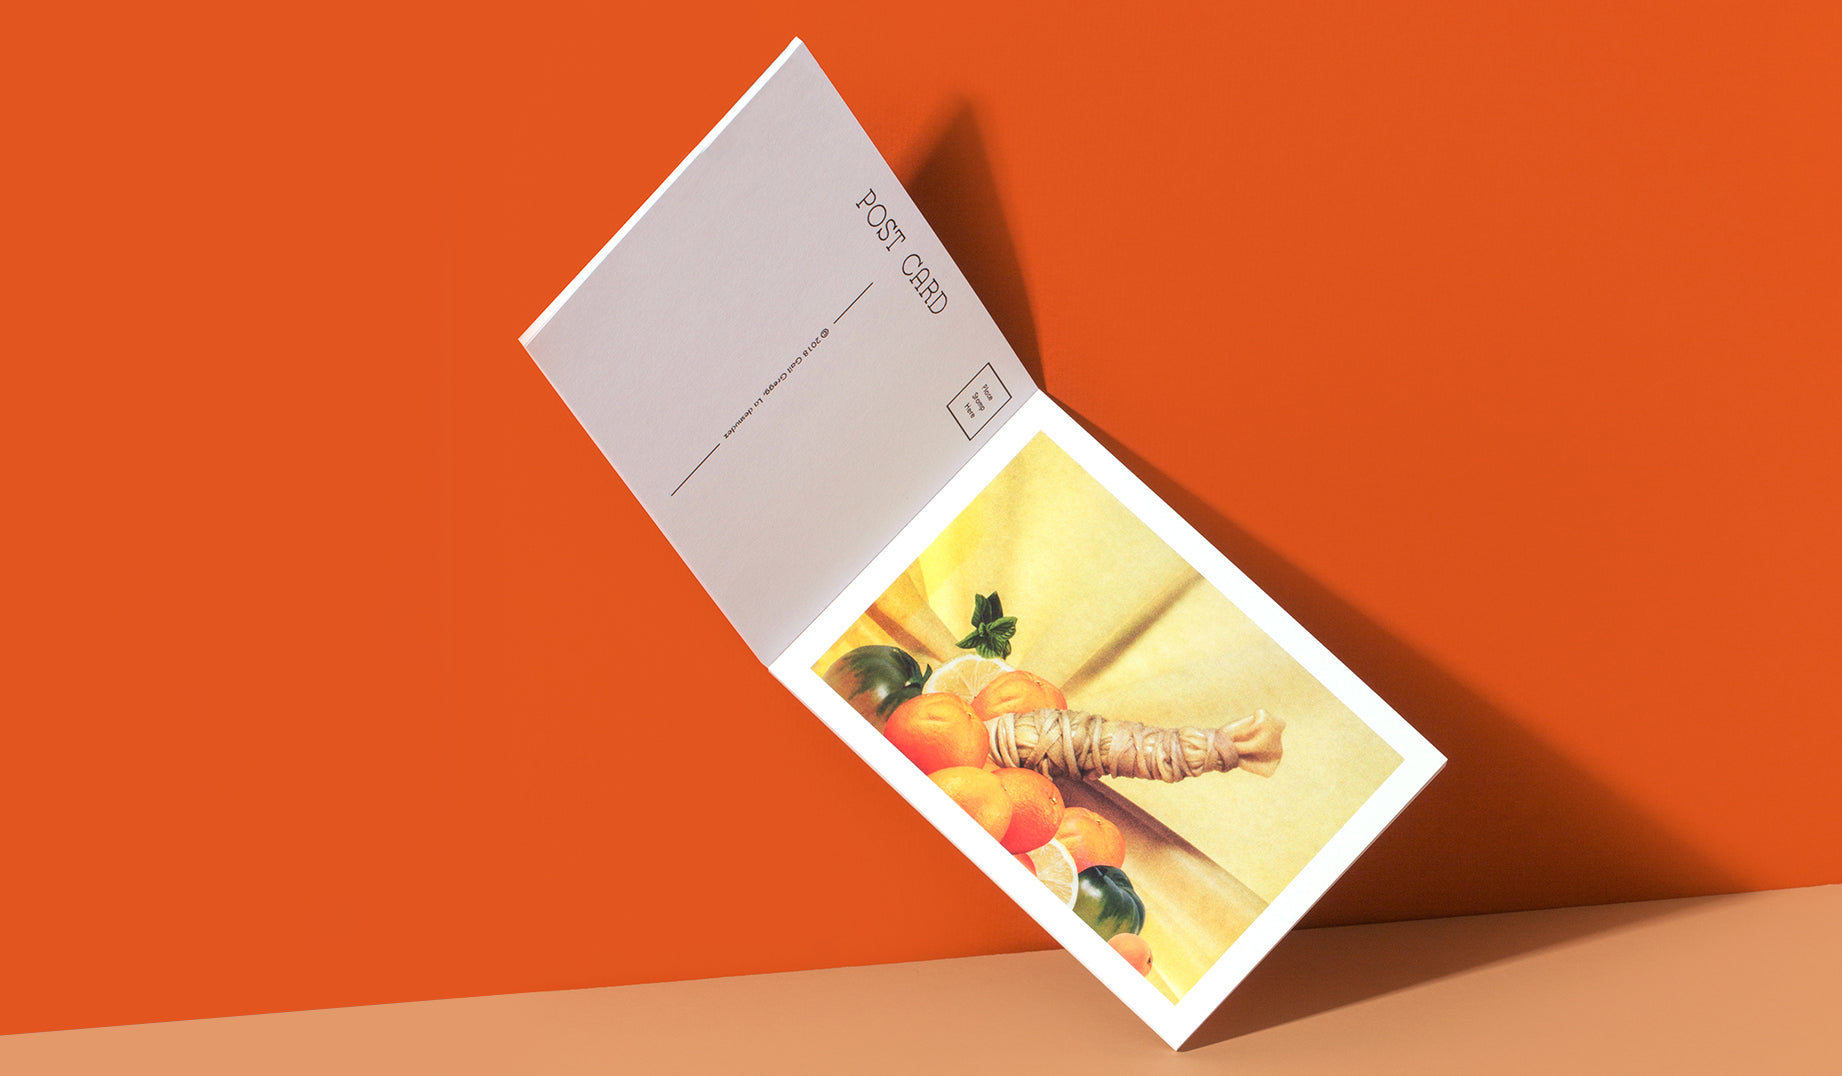 Impress your clients with a postcard notepad as a promo. Include a wide range of your images in a format they can use for their own personal correspondence.